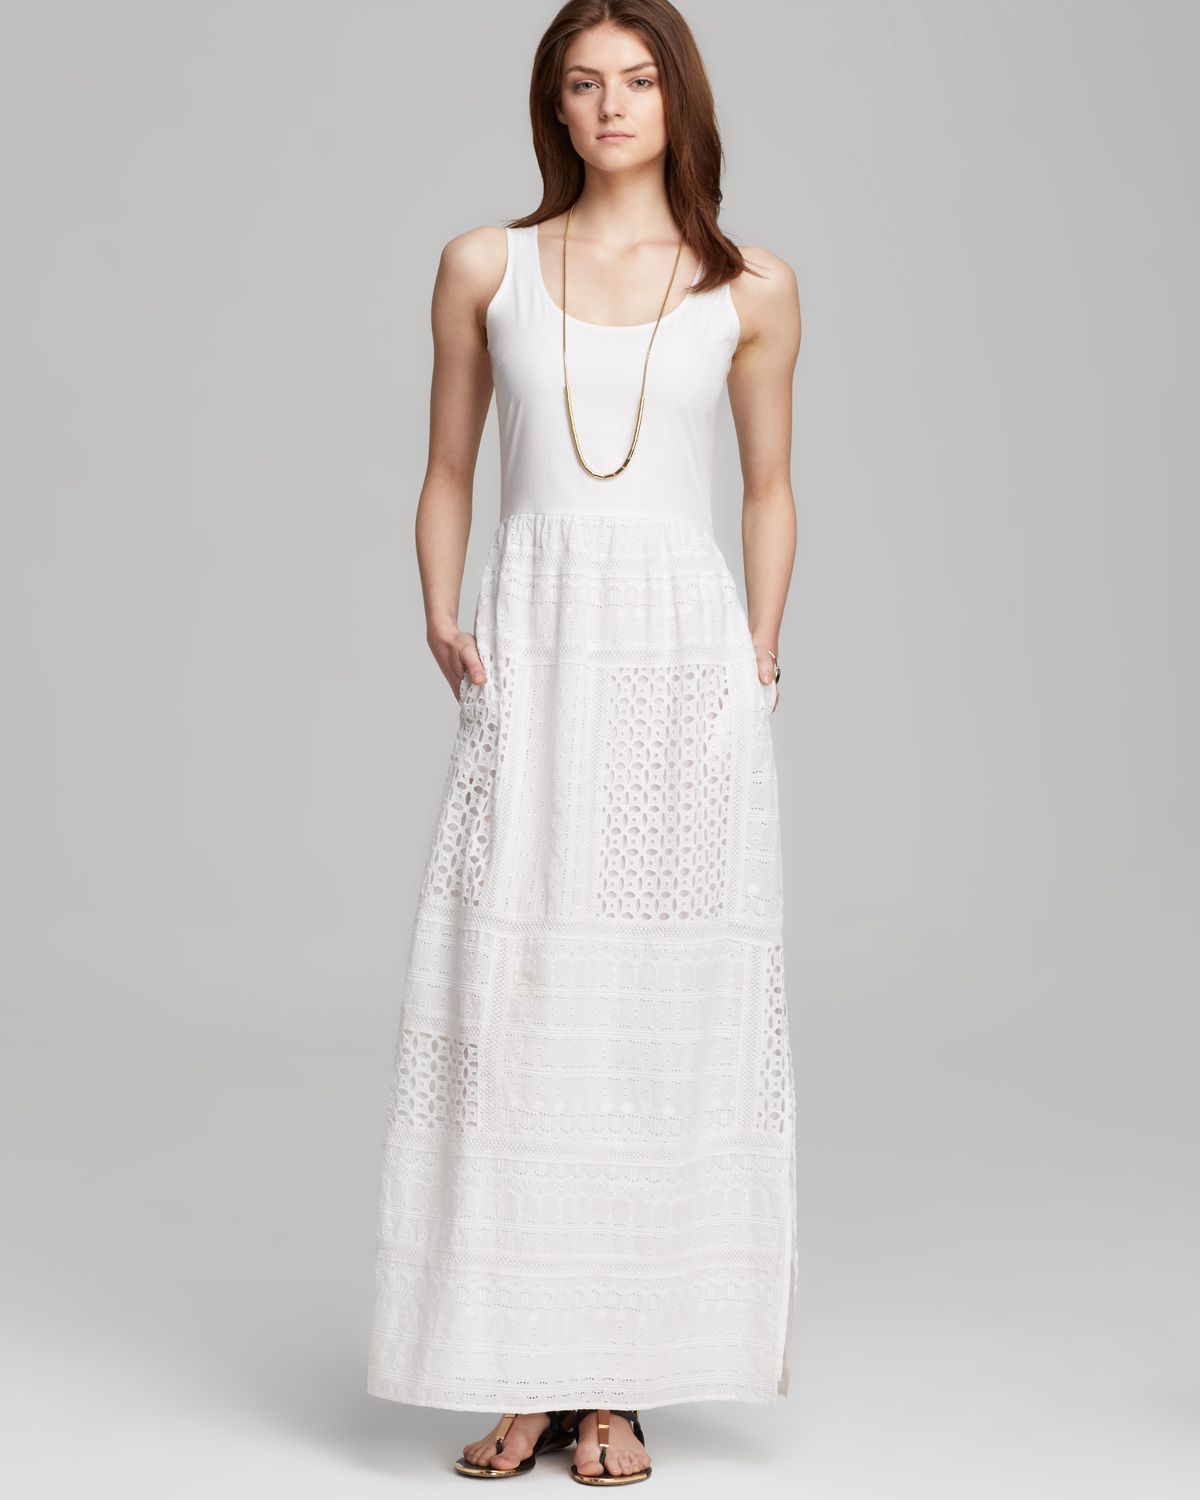 Cool  Two By Sleeveless Eyelet Cotton Dress In White Ultra White  Lyst